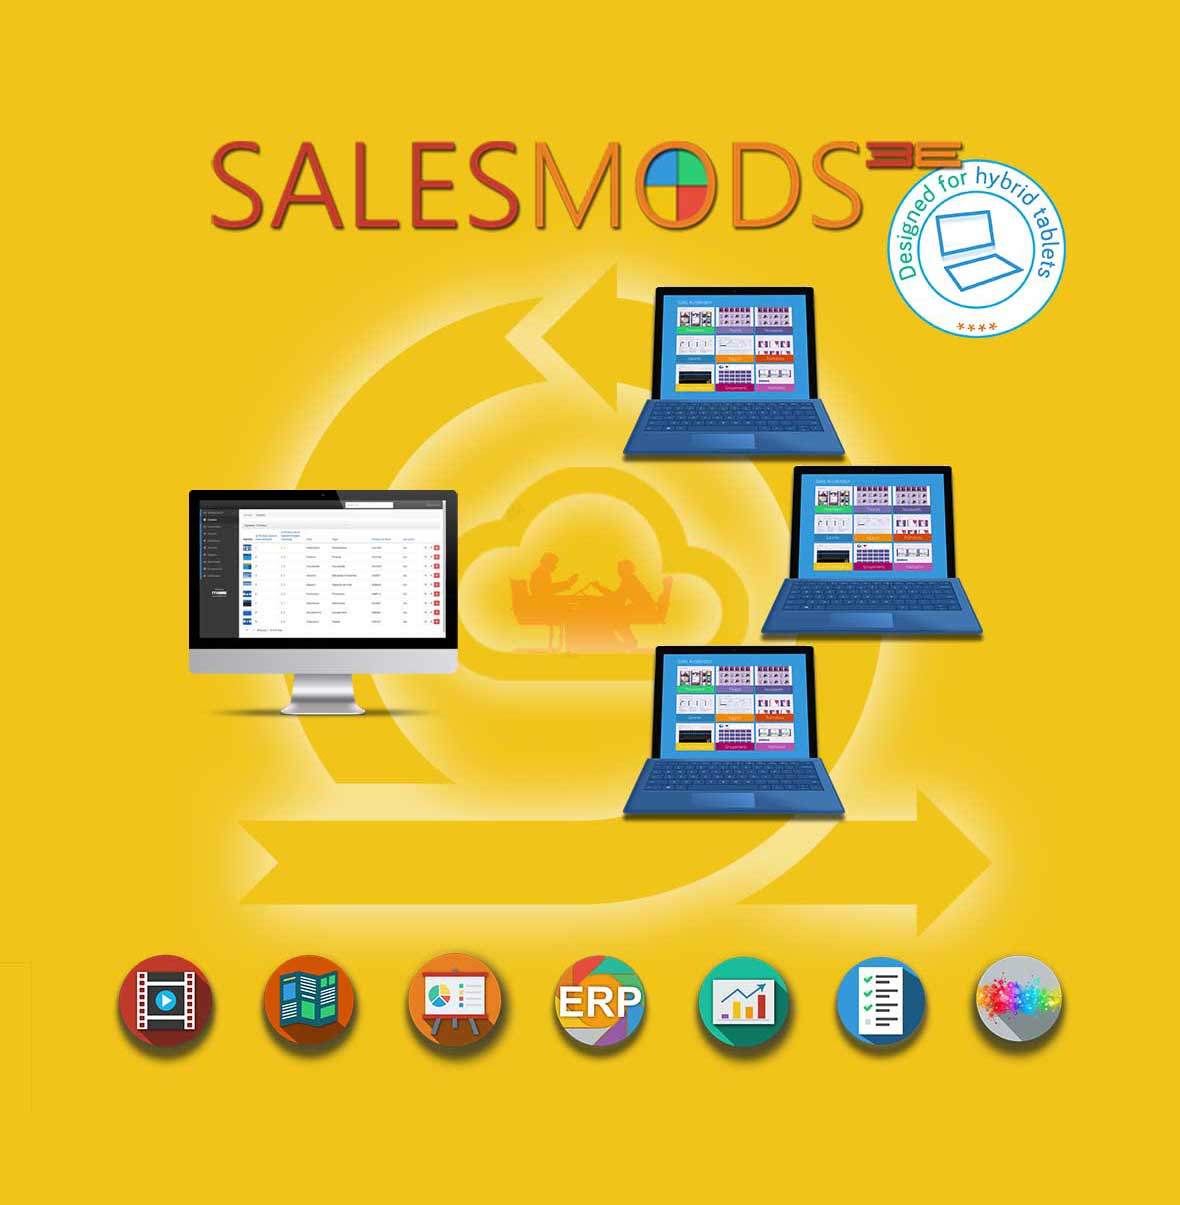 More information about the SalesMods 3E concept: the 1st modular solution for digital storytelling designed for your sales force